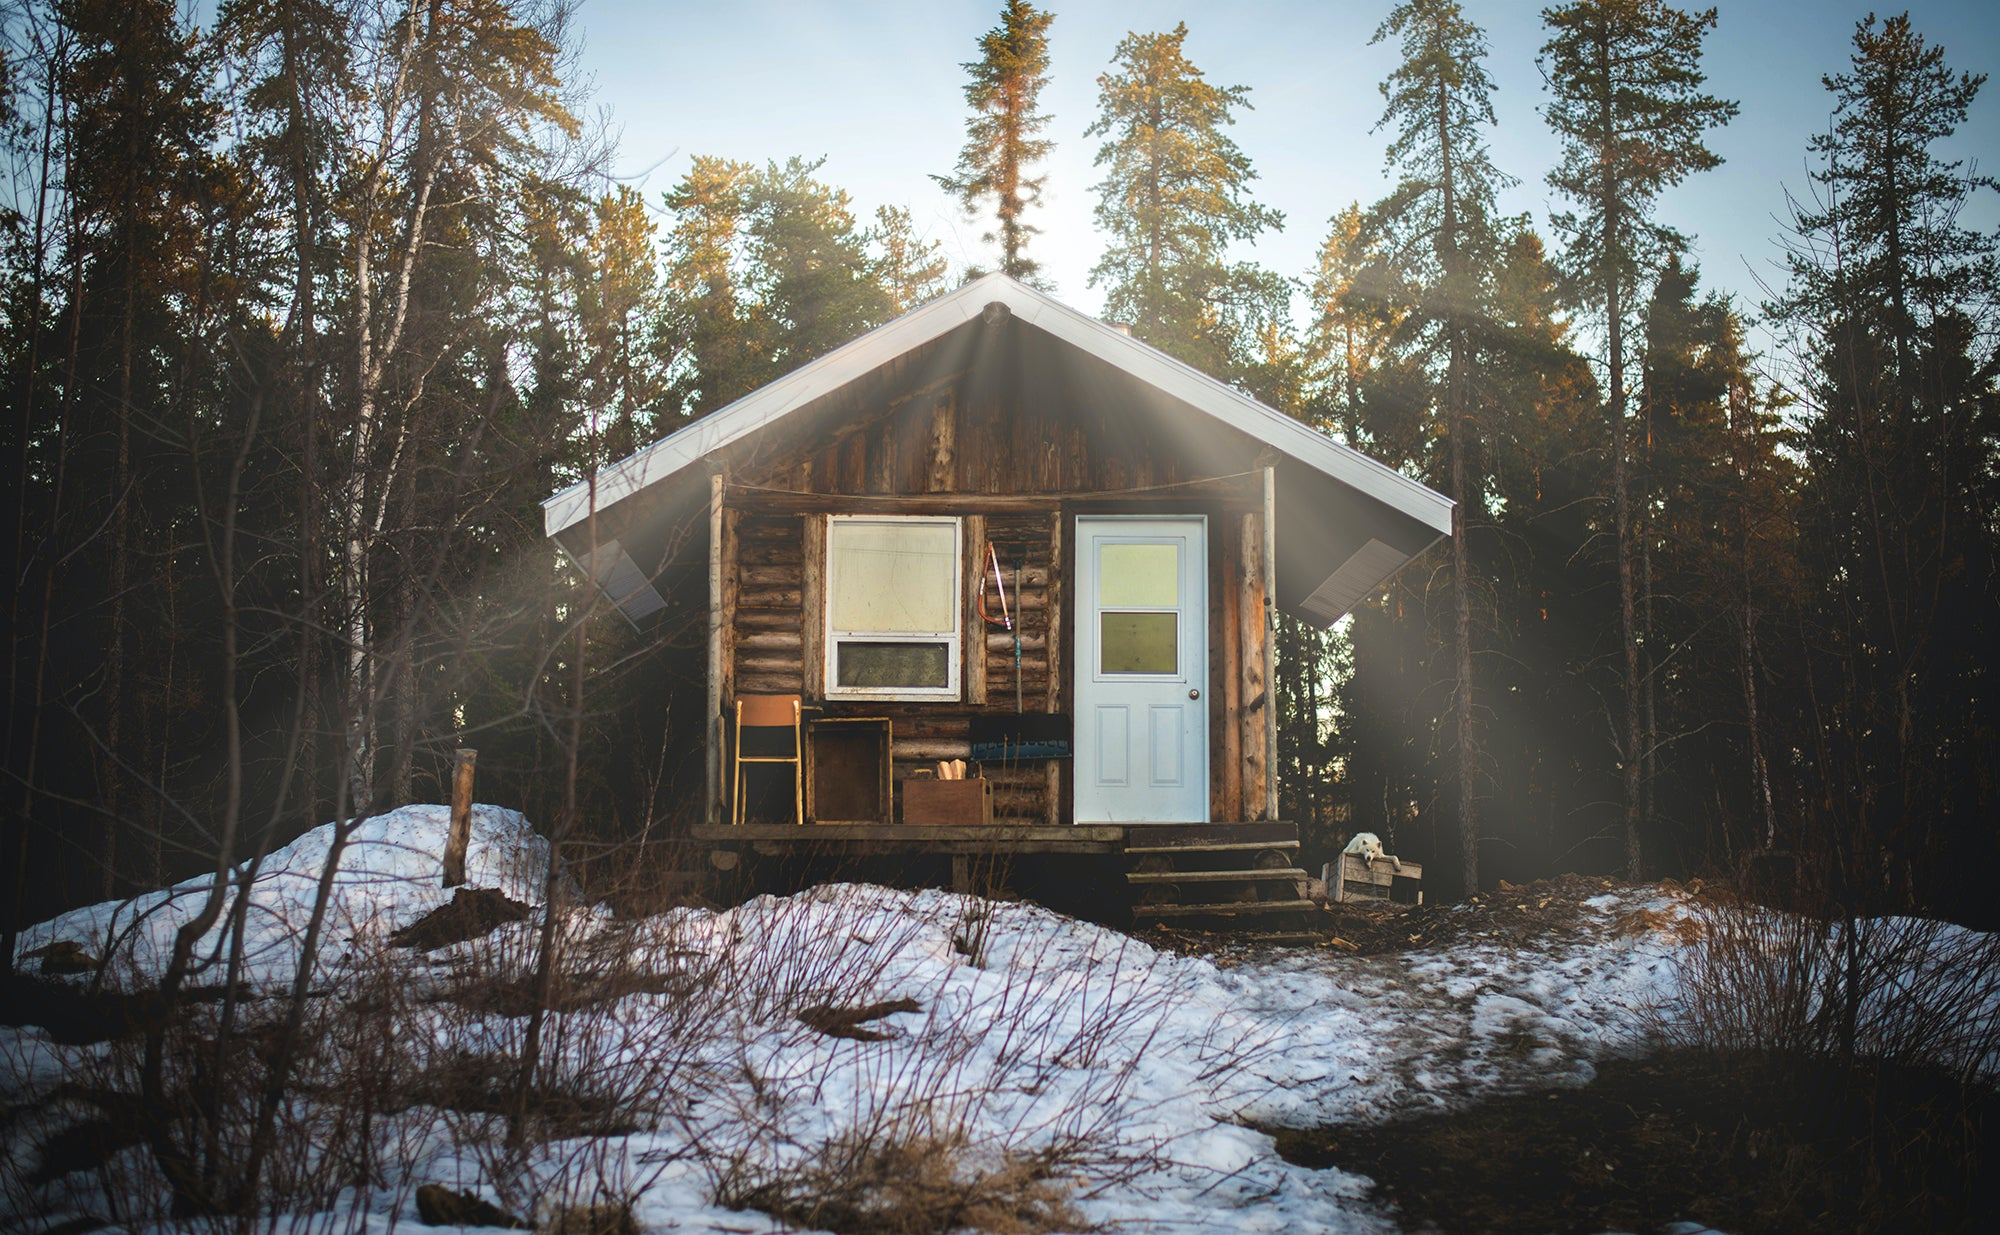 cabin in the woods with sun shining over the roof and snow on the ground